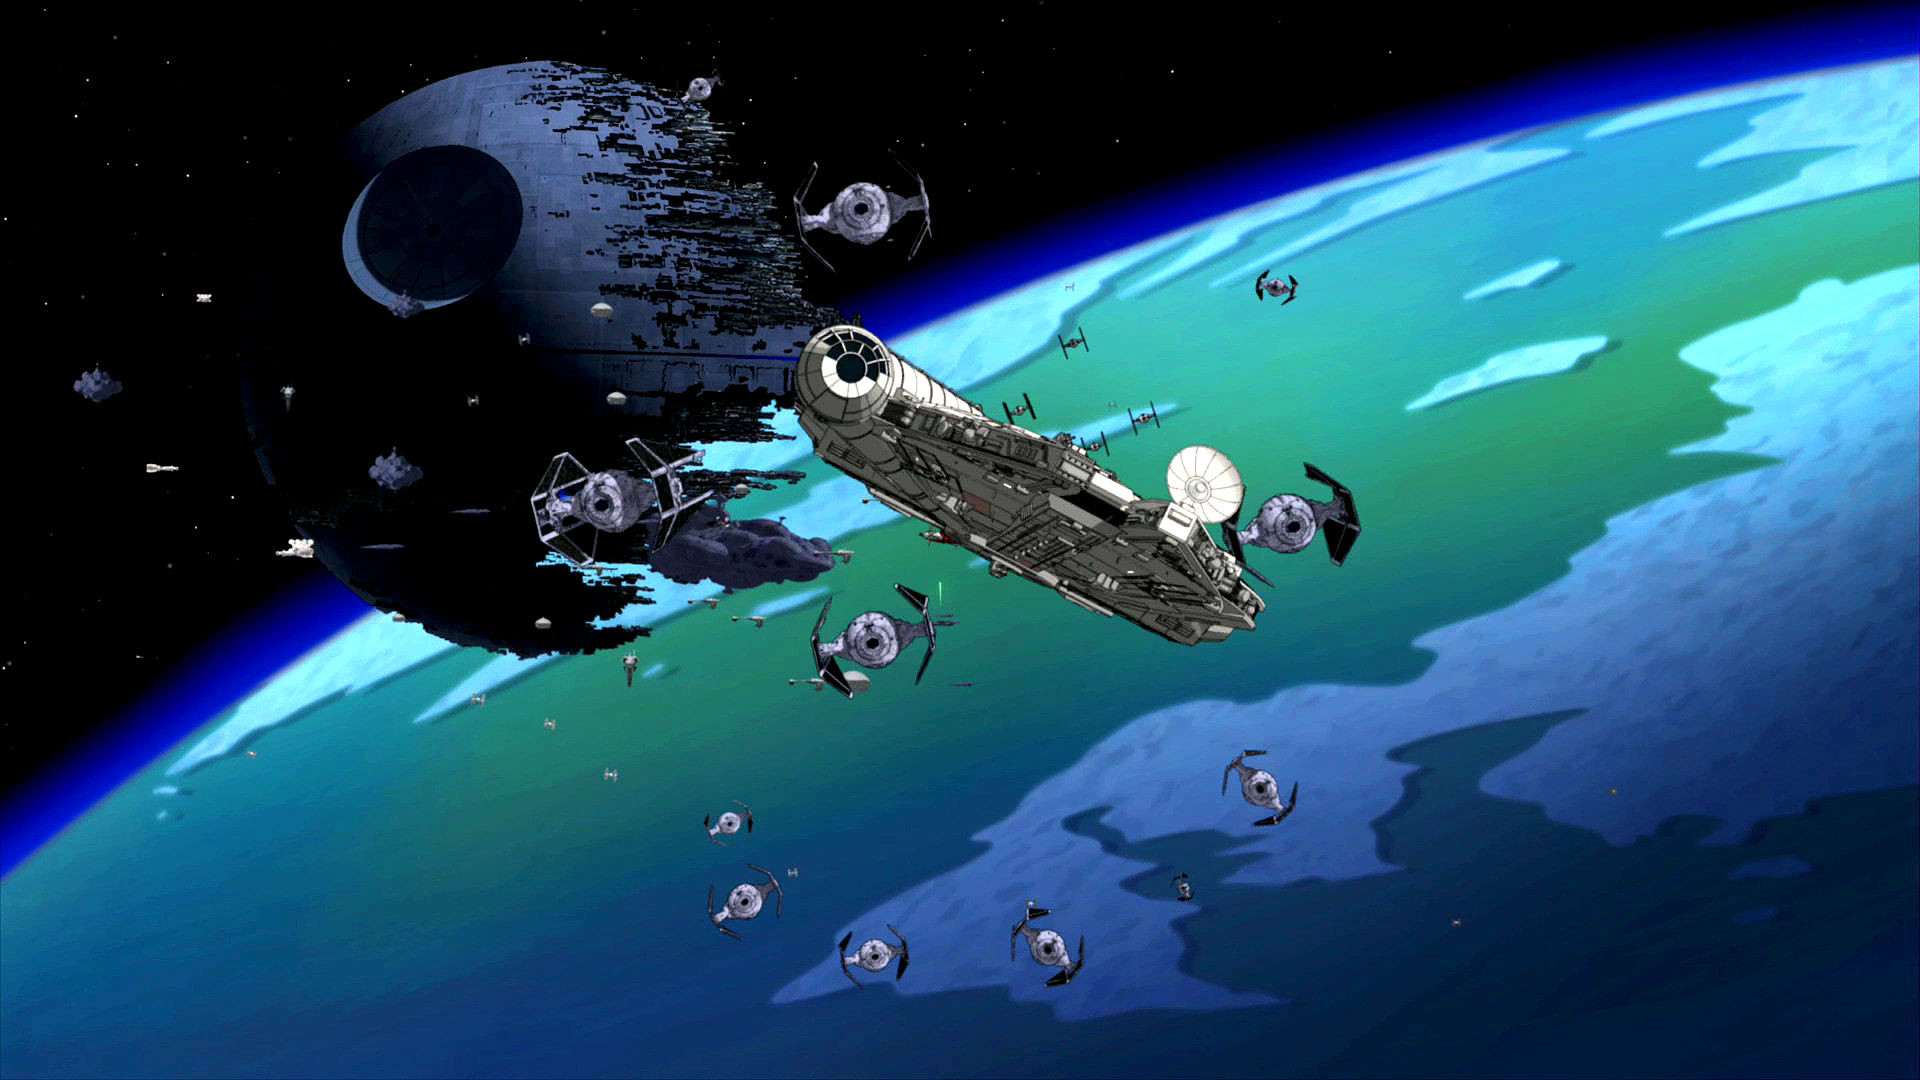 Family Guy Star Wars Wallpaper 47 Images